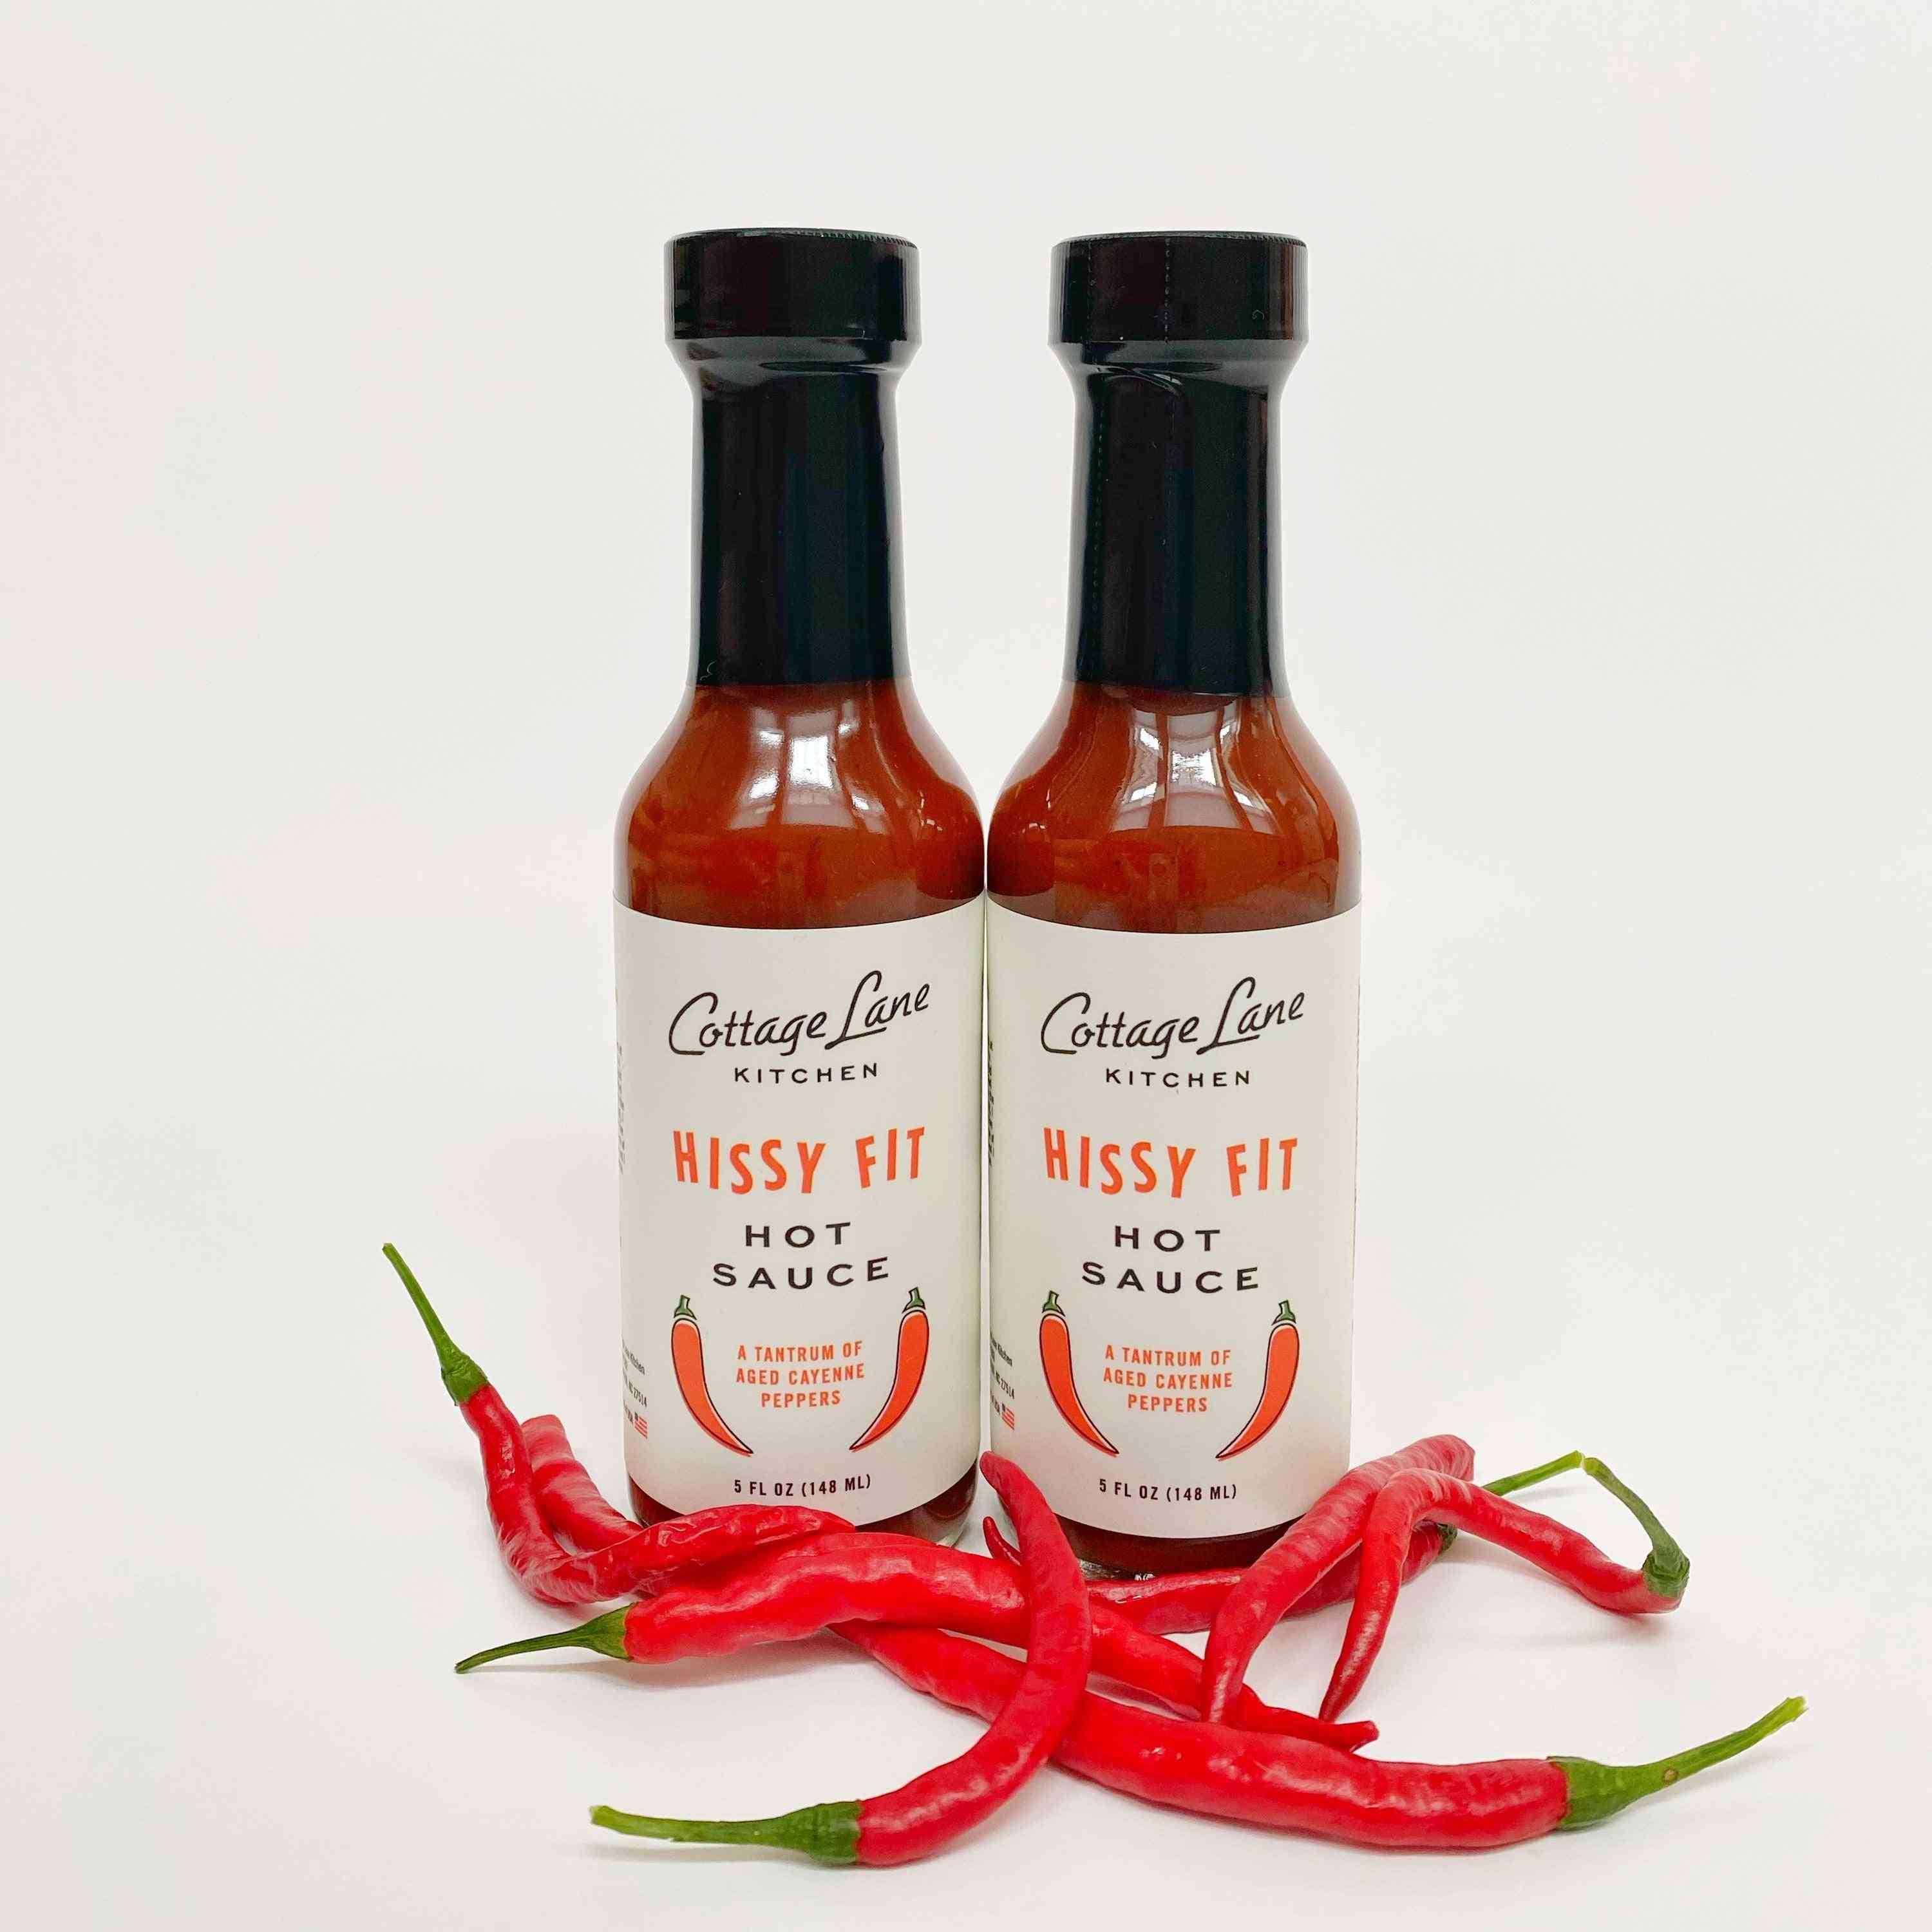 Hissy Fit Hot Sauce